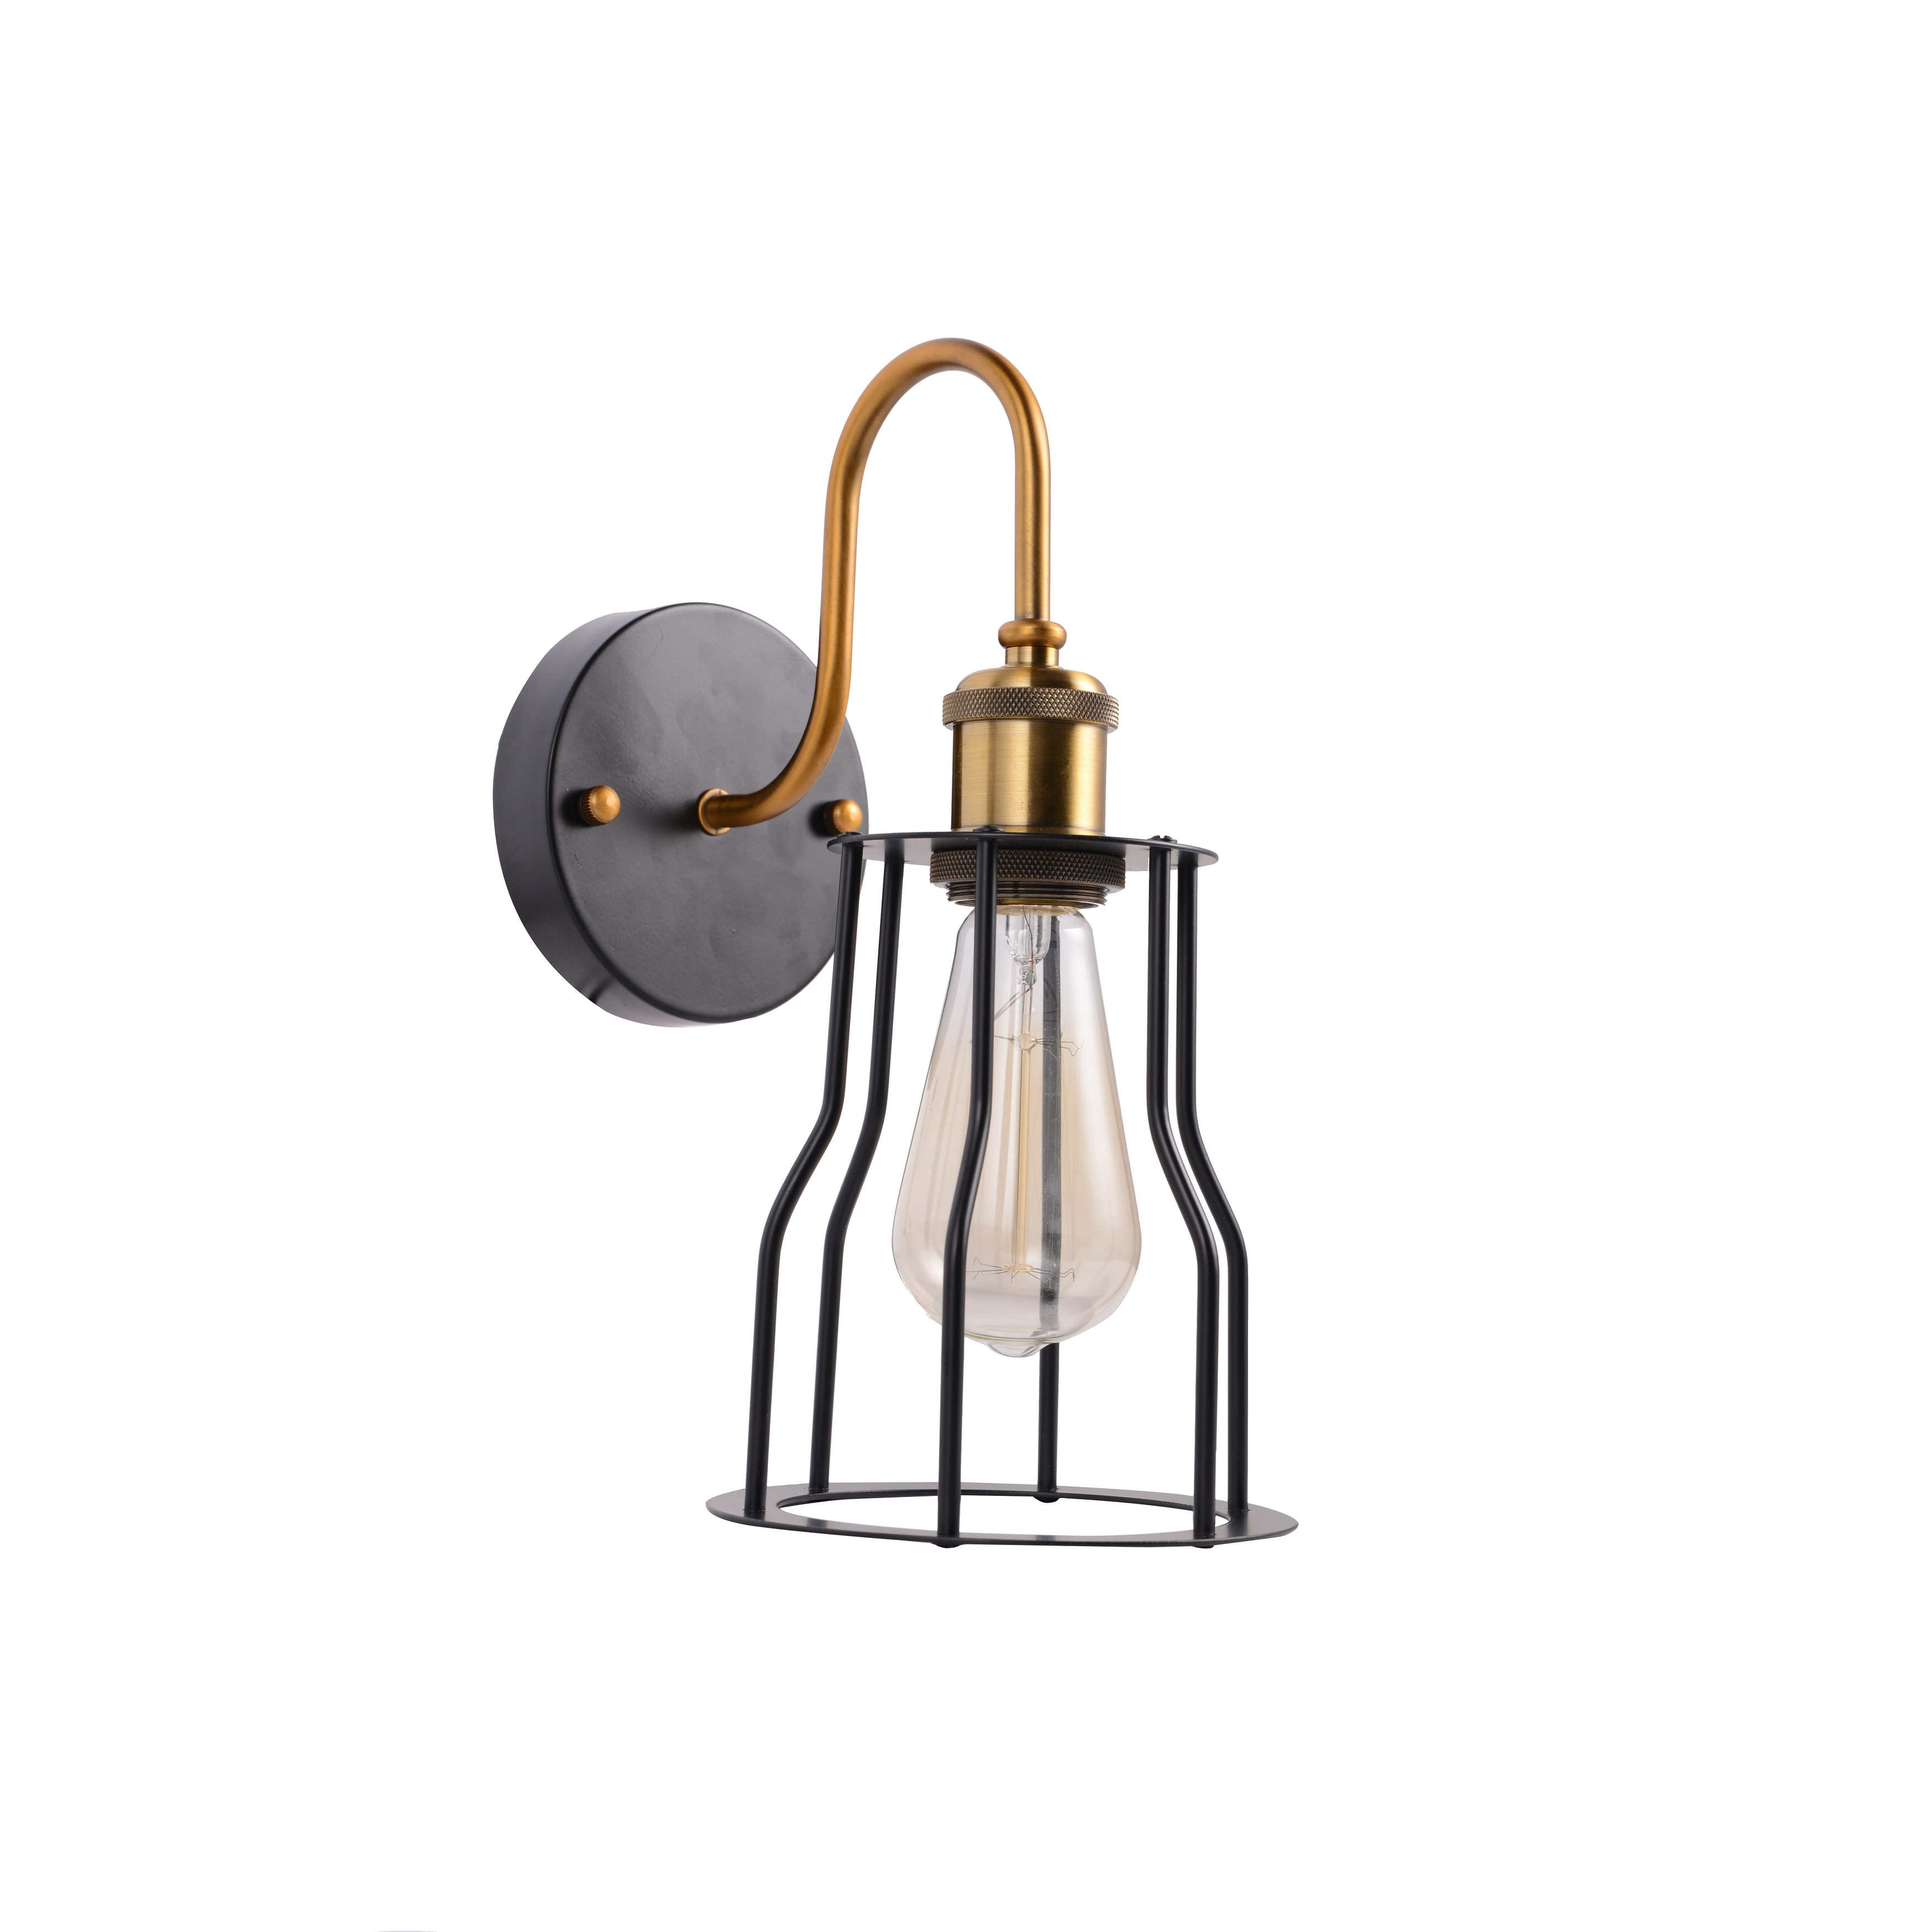 Vintage industrial wire cage wall light fixture black wall sconce ...